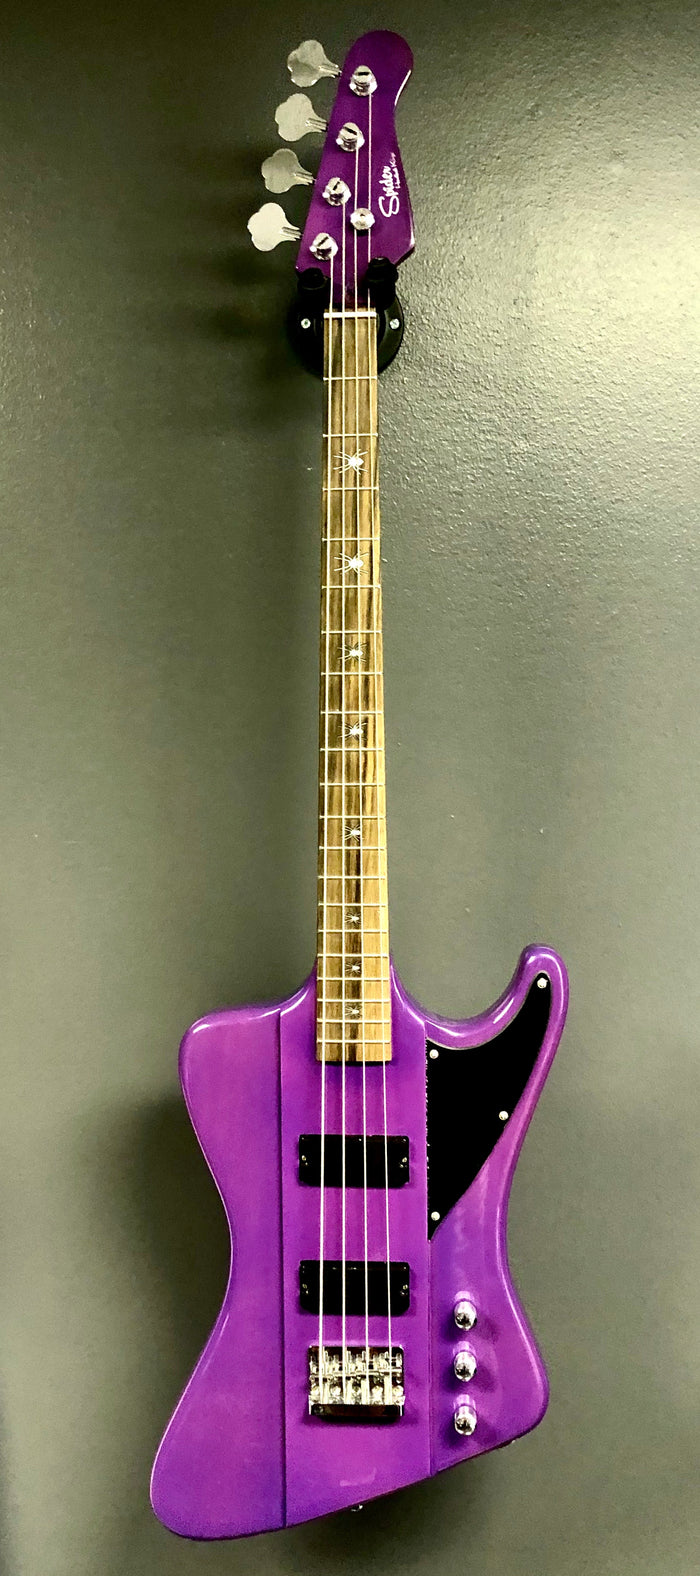 Kustom Series 18: Spider Bass - Midnight Rider